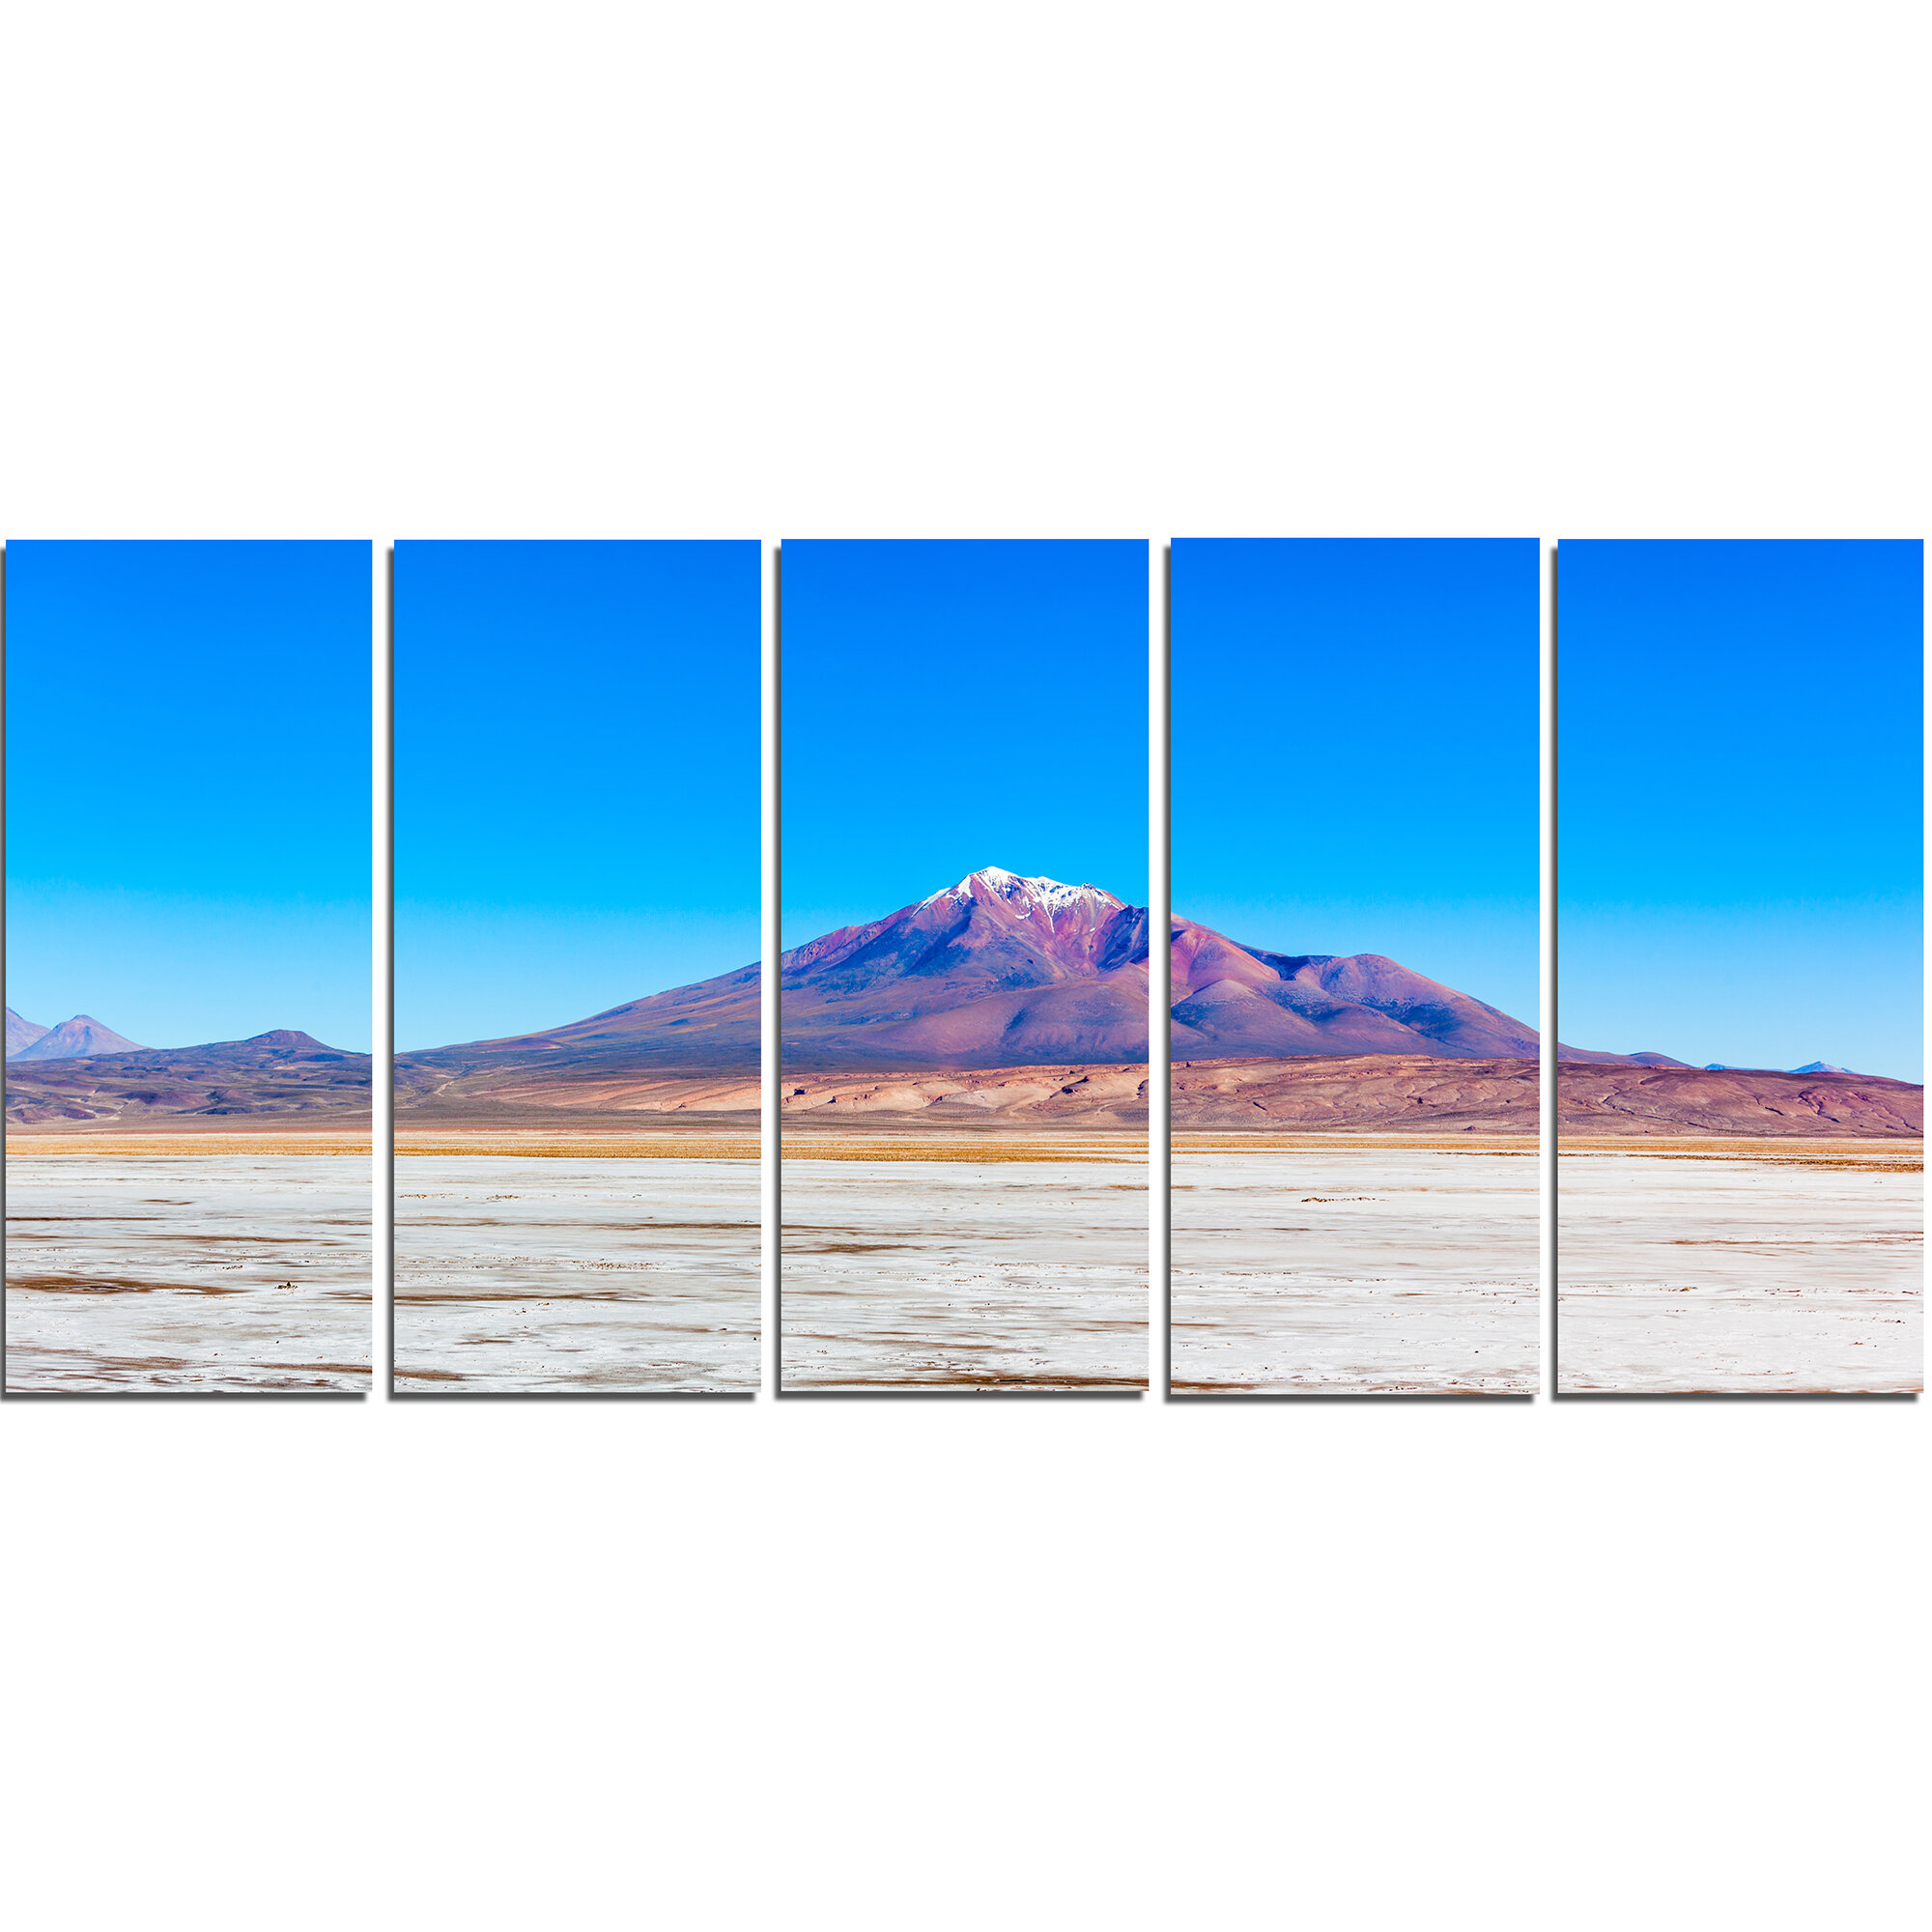 Designart Altiplano Near Uyuni Panorama 5 Piece Wall Art On Wrapped Canvas Set Wayfair